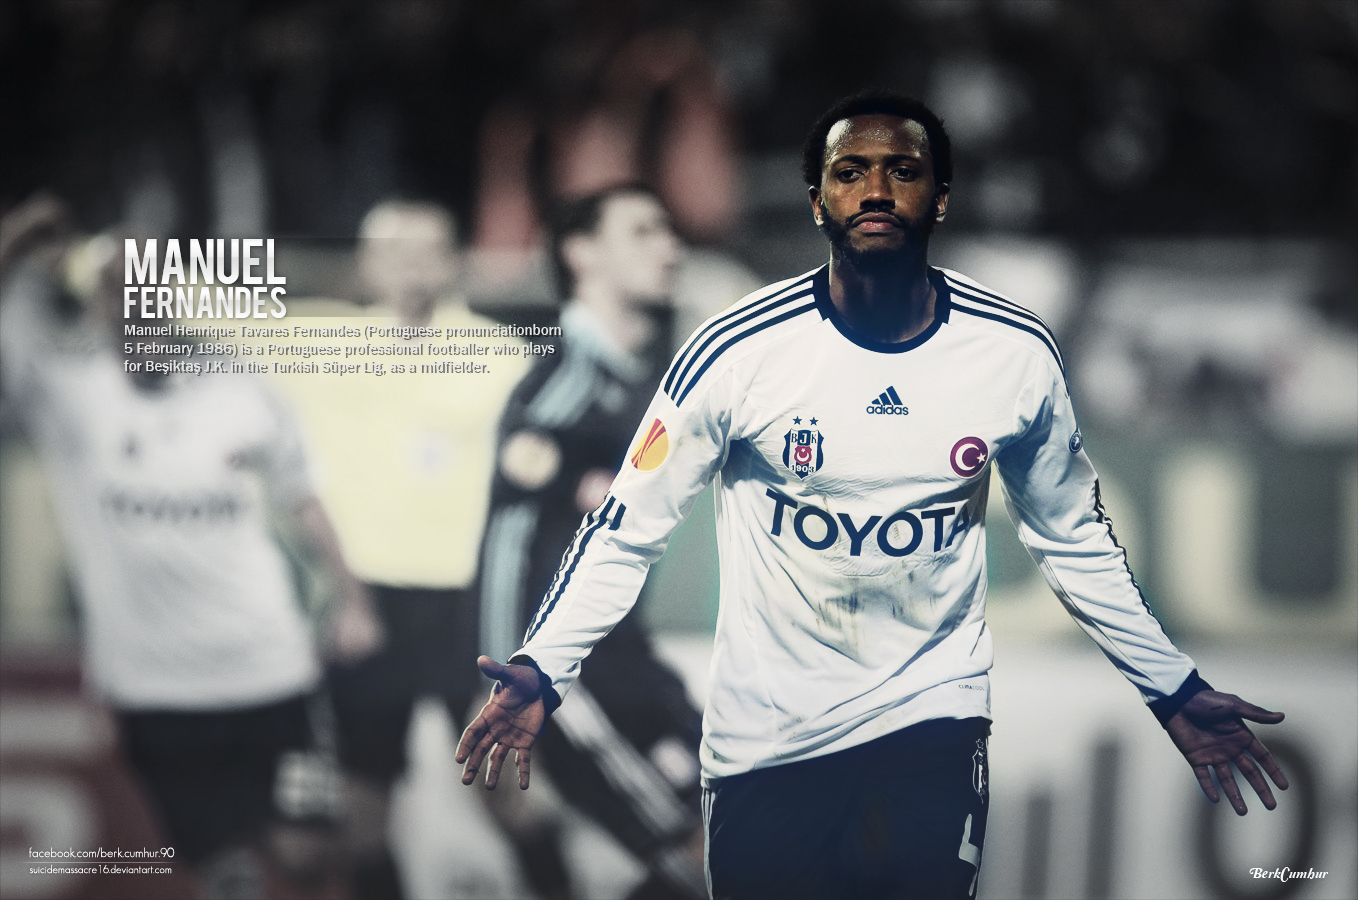 Manuel Fernandes by suicidemassacre16